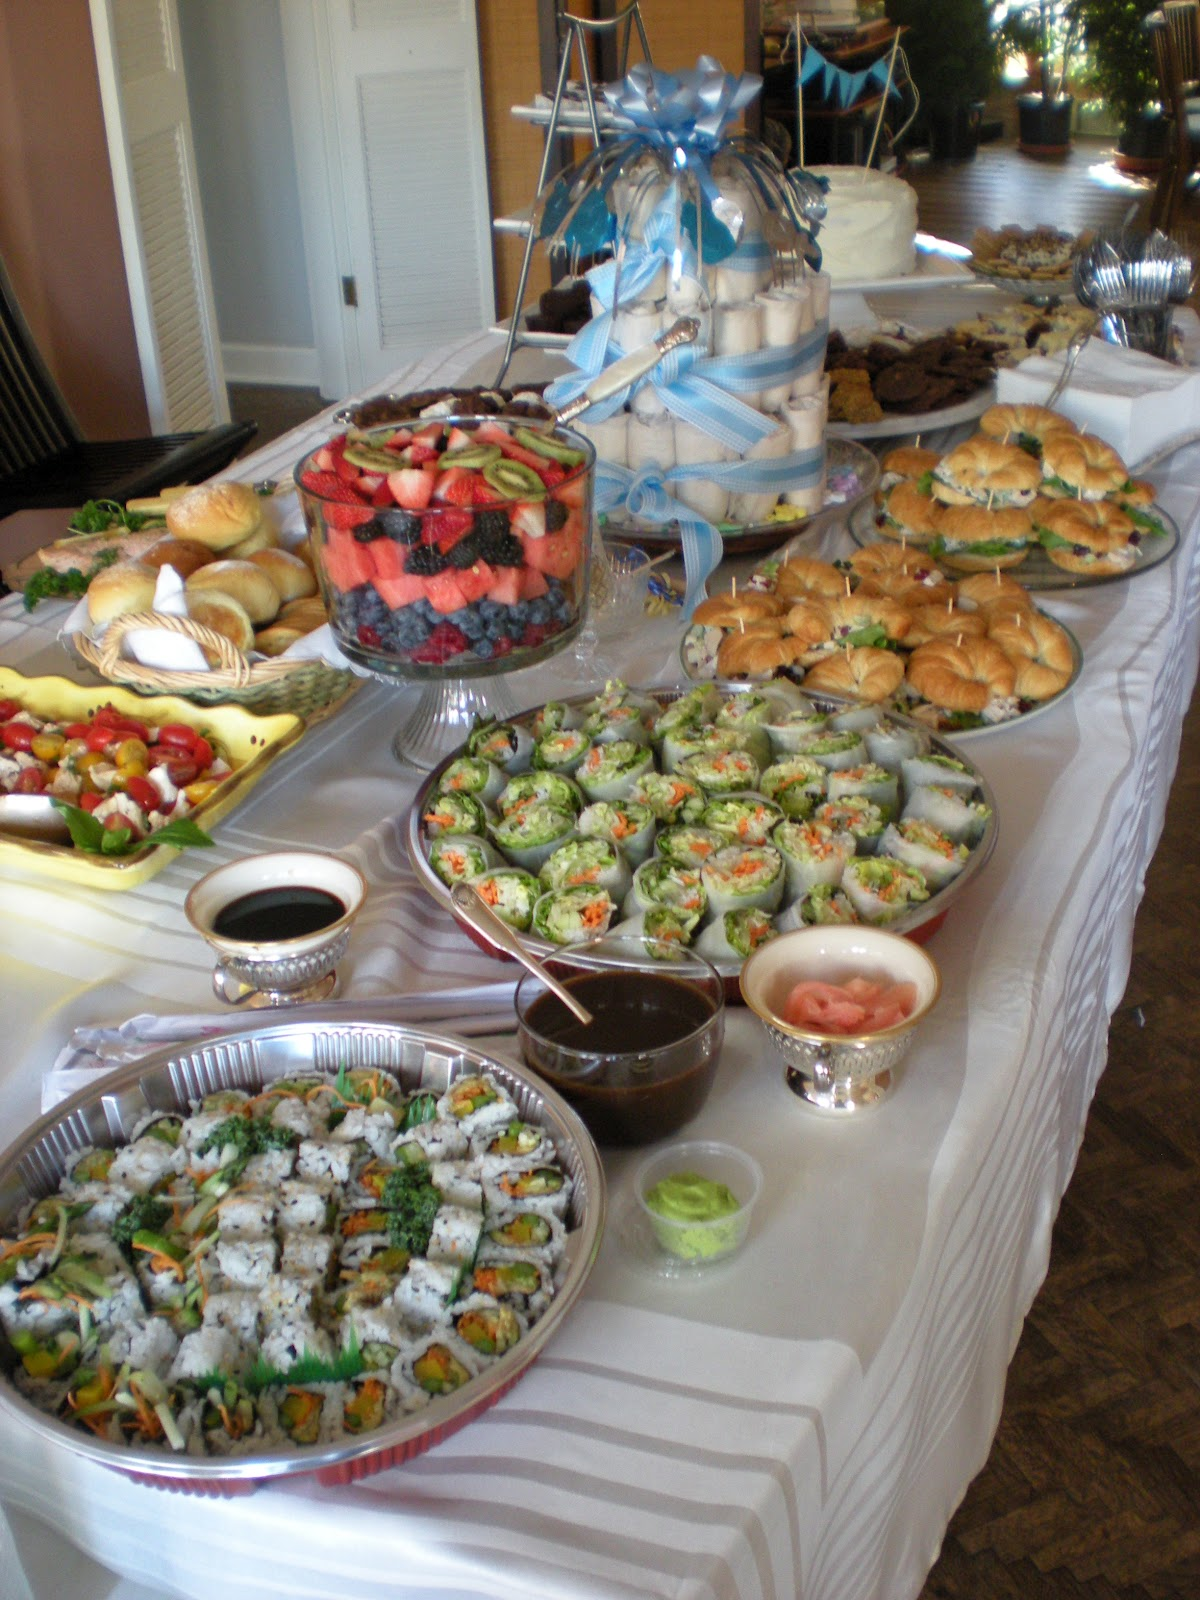 Baby Shower Food Ideas: Baby Shower Food To Serve